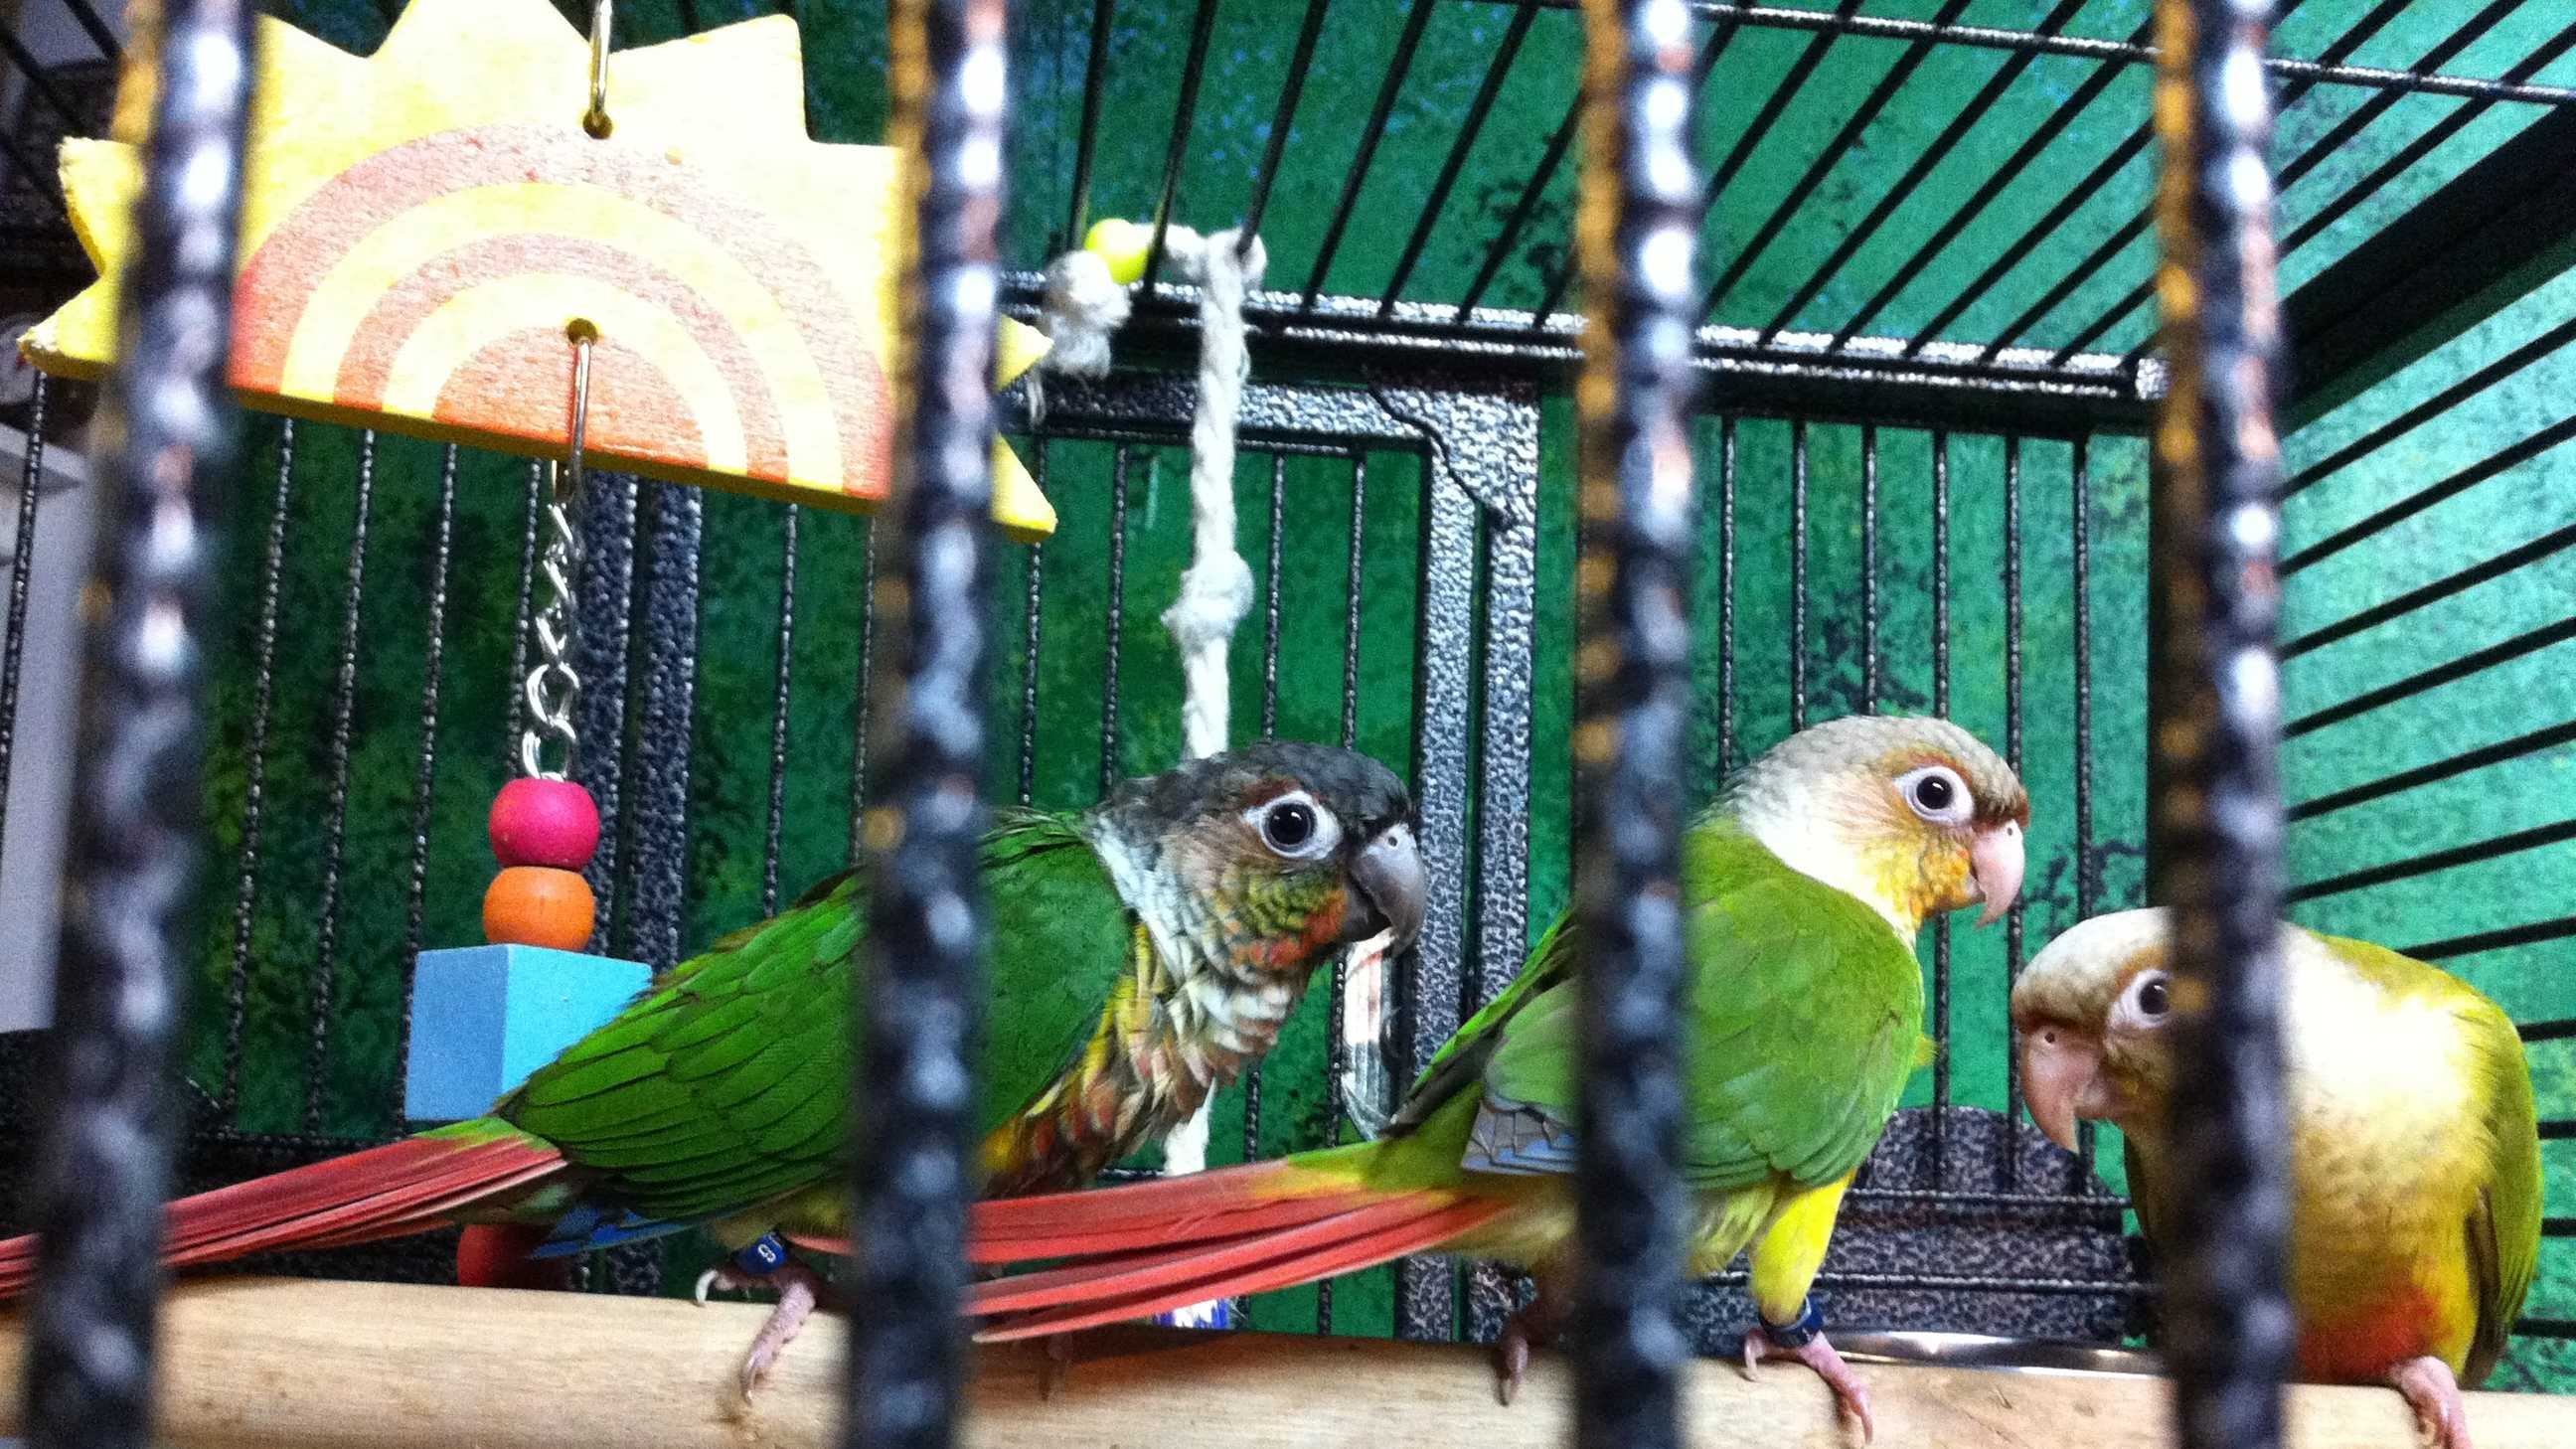 A rare parrot was stolen from a Weymouth pet store.